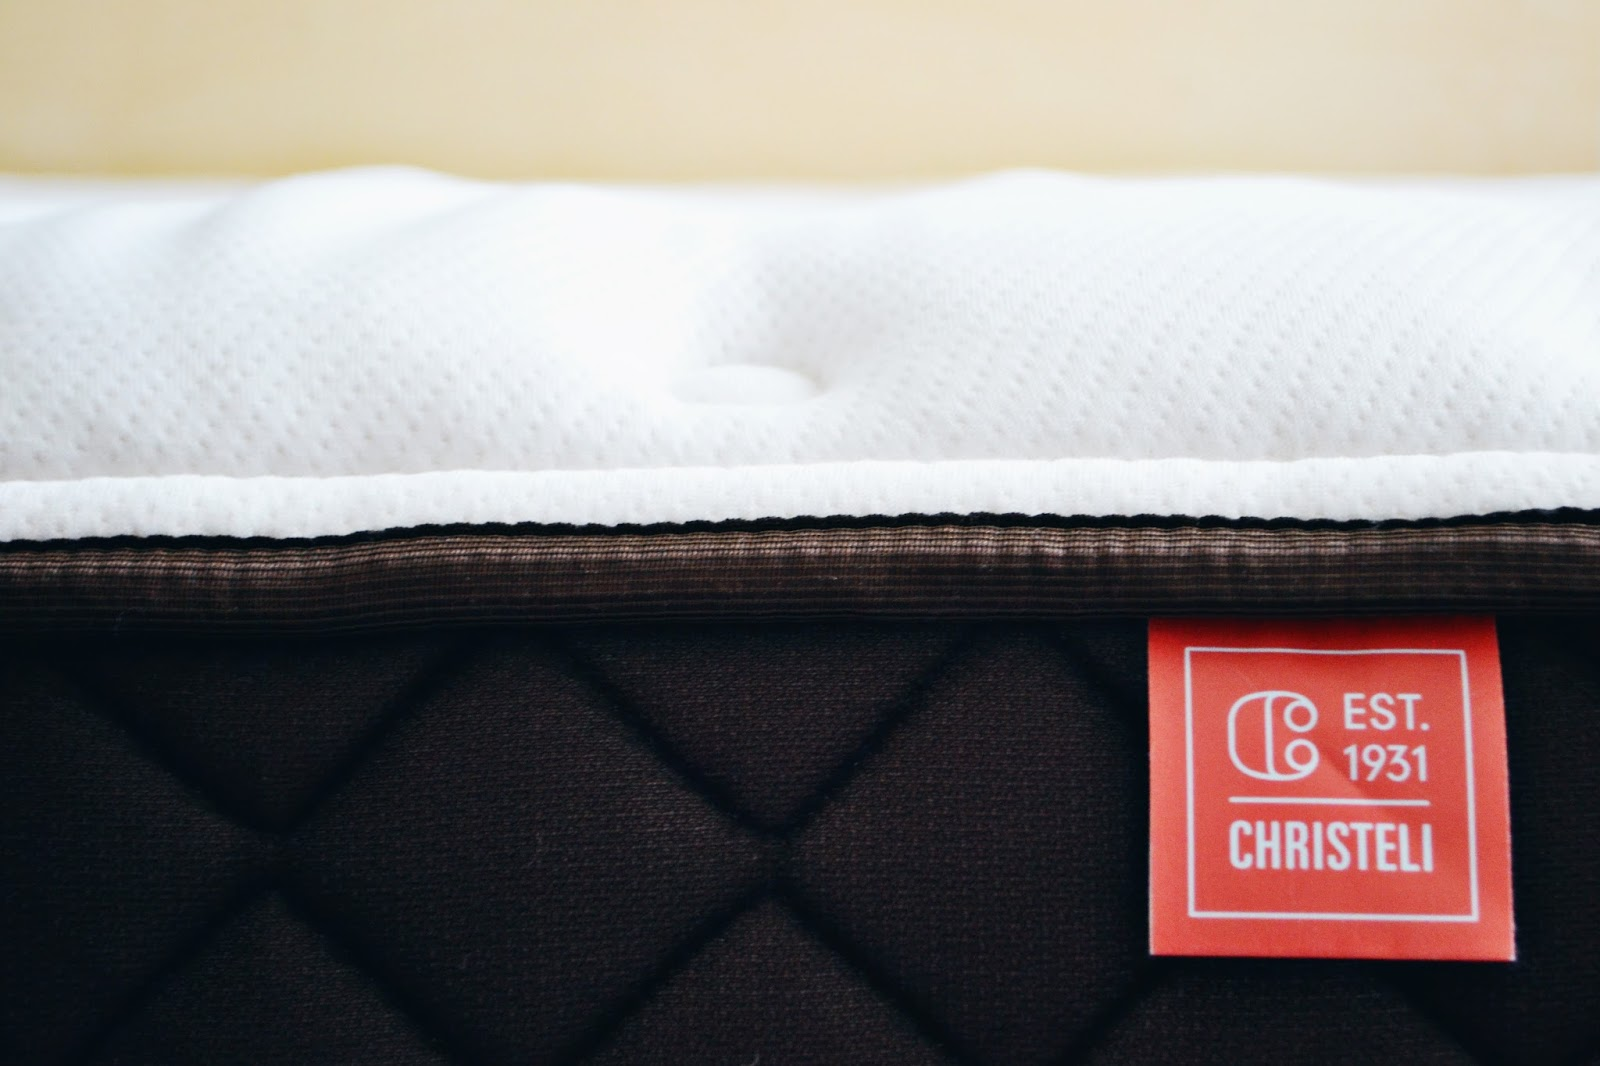 christeli step reviews adjusting charleston firmness mattress